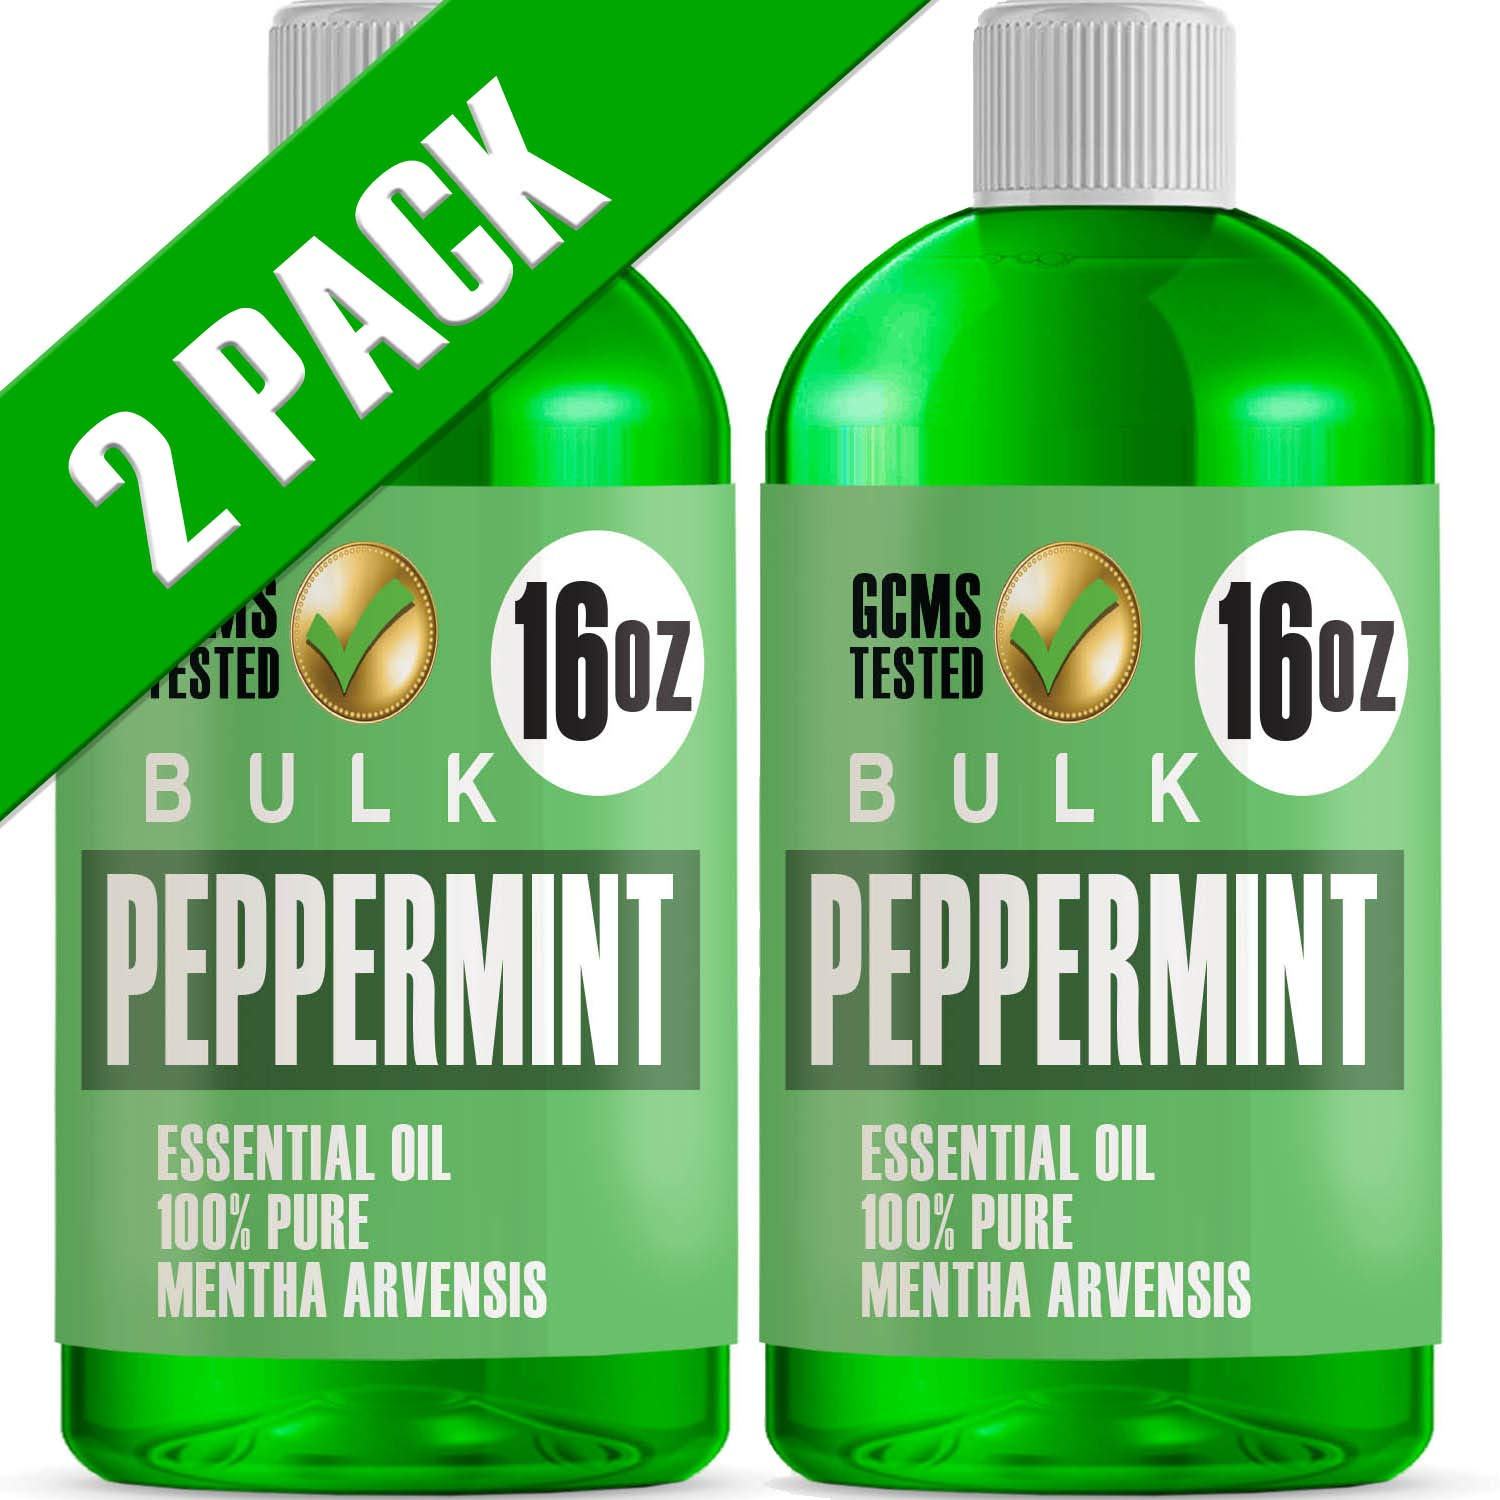 Lab Bulks Essential Oil Bulk Essential Oil, Peppermint, 32 Fluid Ounce by Lab Bulks Essential Oil